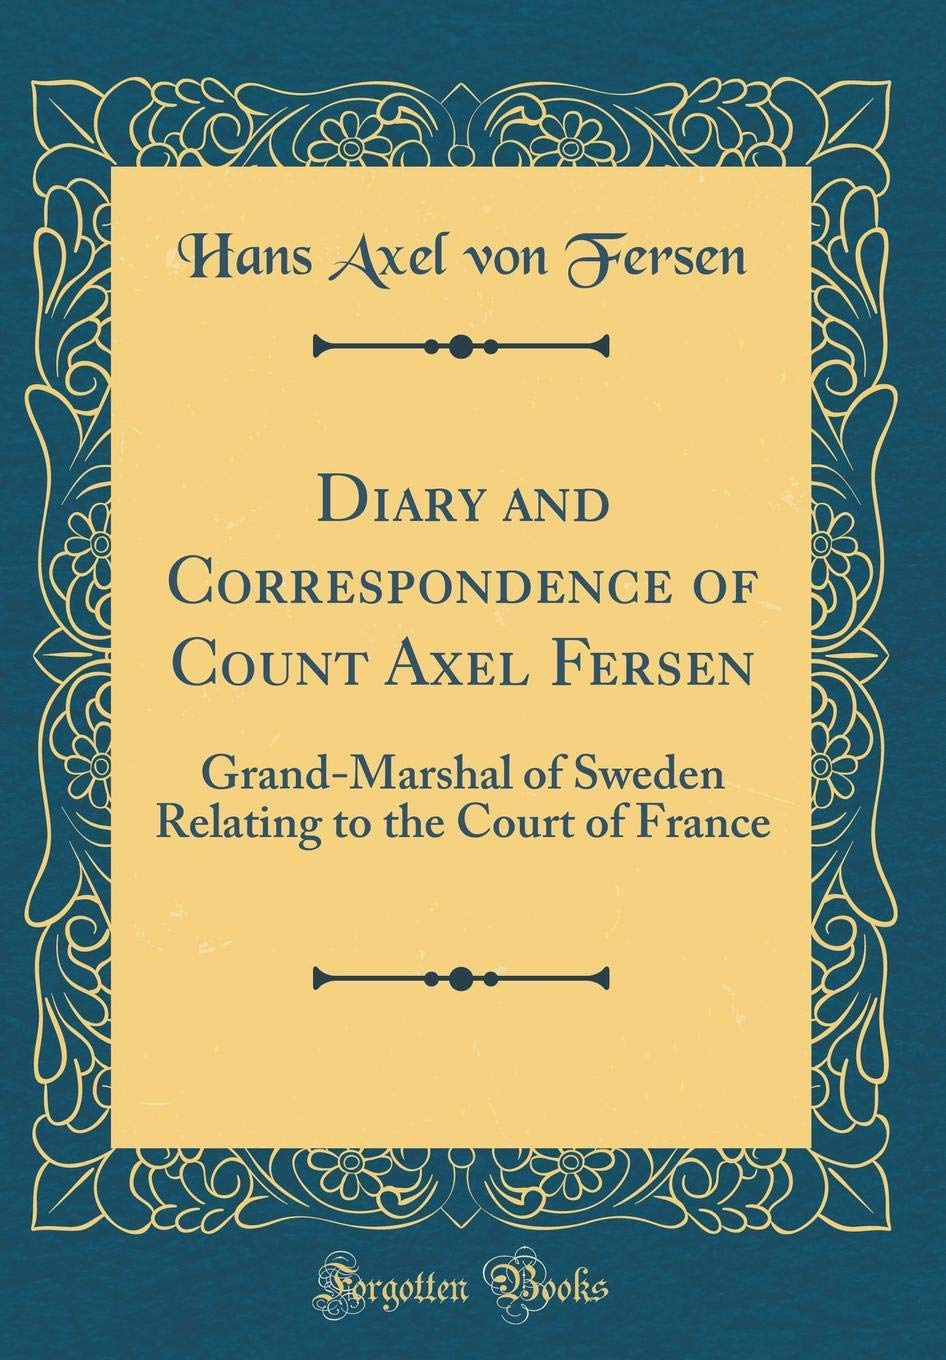 Diary and Correspondence of Count Axel Fersen: Grand-Marshal of Sweden  Relating to the Court of France (Classic Reprint): Hans Axel von Fersen: ...